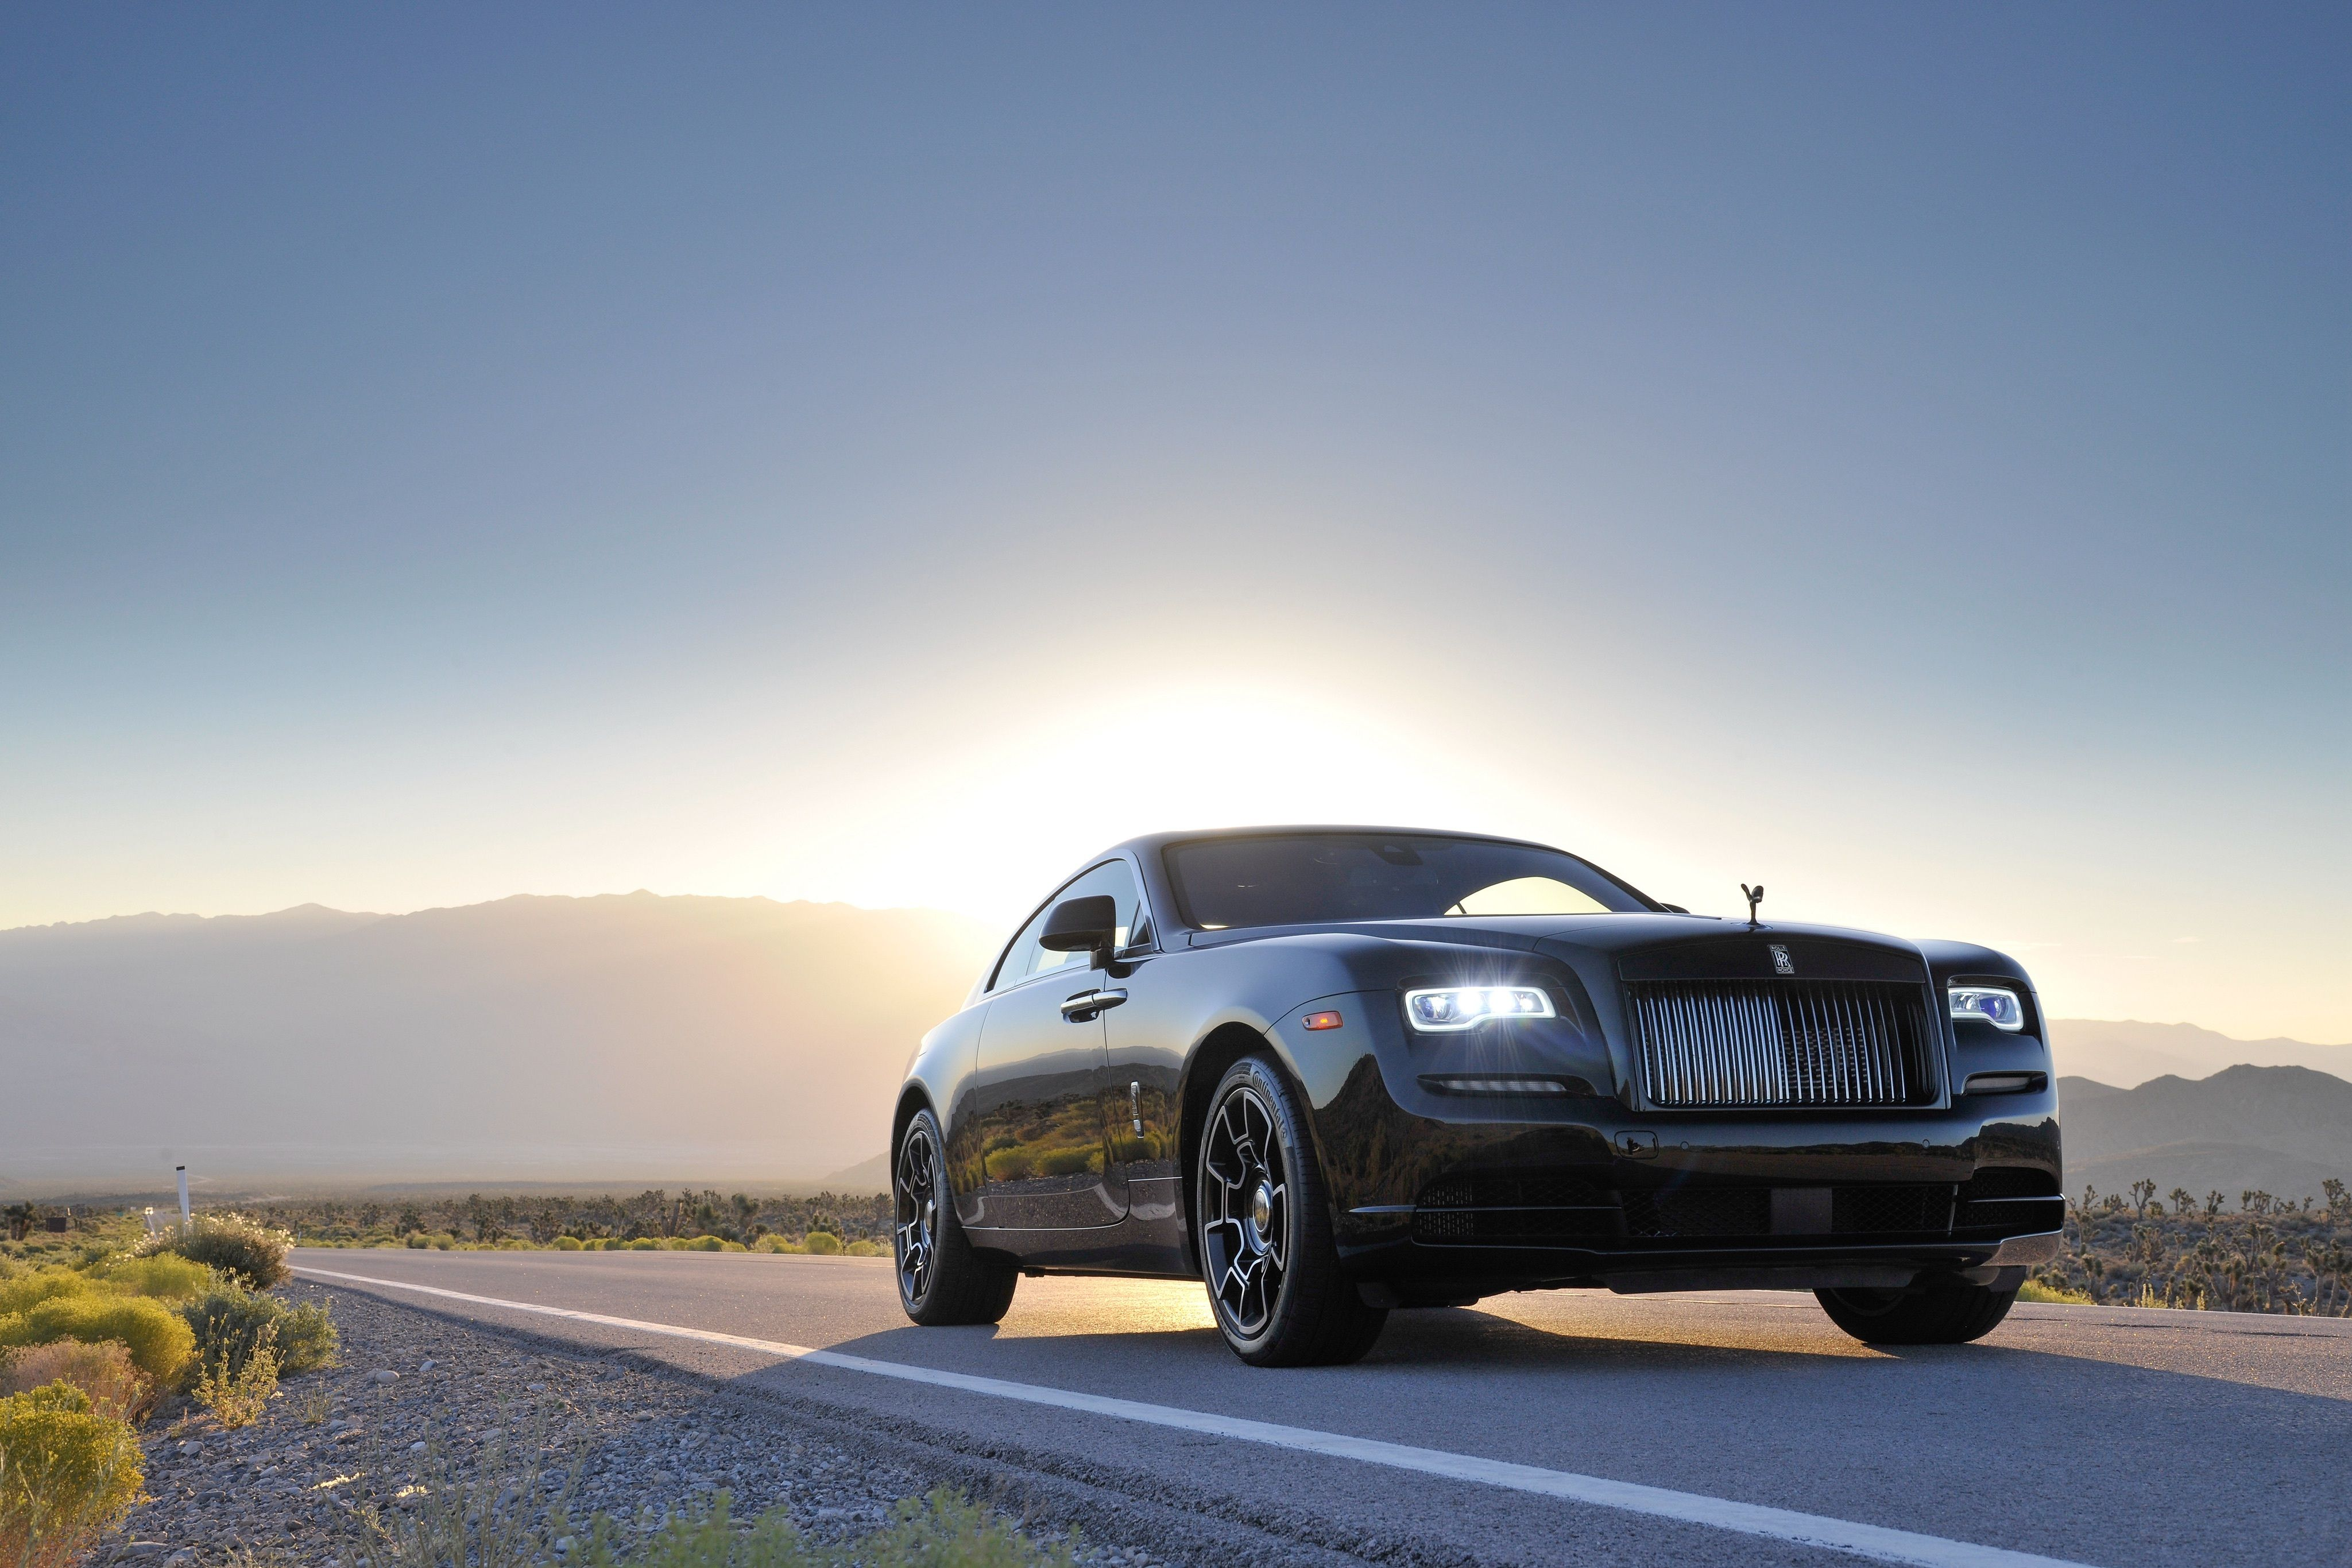 229 Rolls Royce HD Wallpapers | Background Images - Wallpaper Abyss